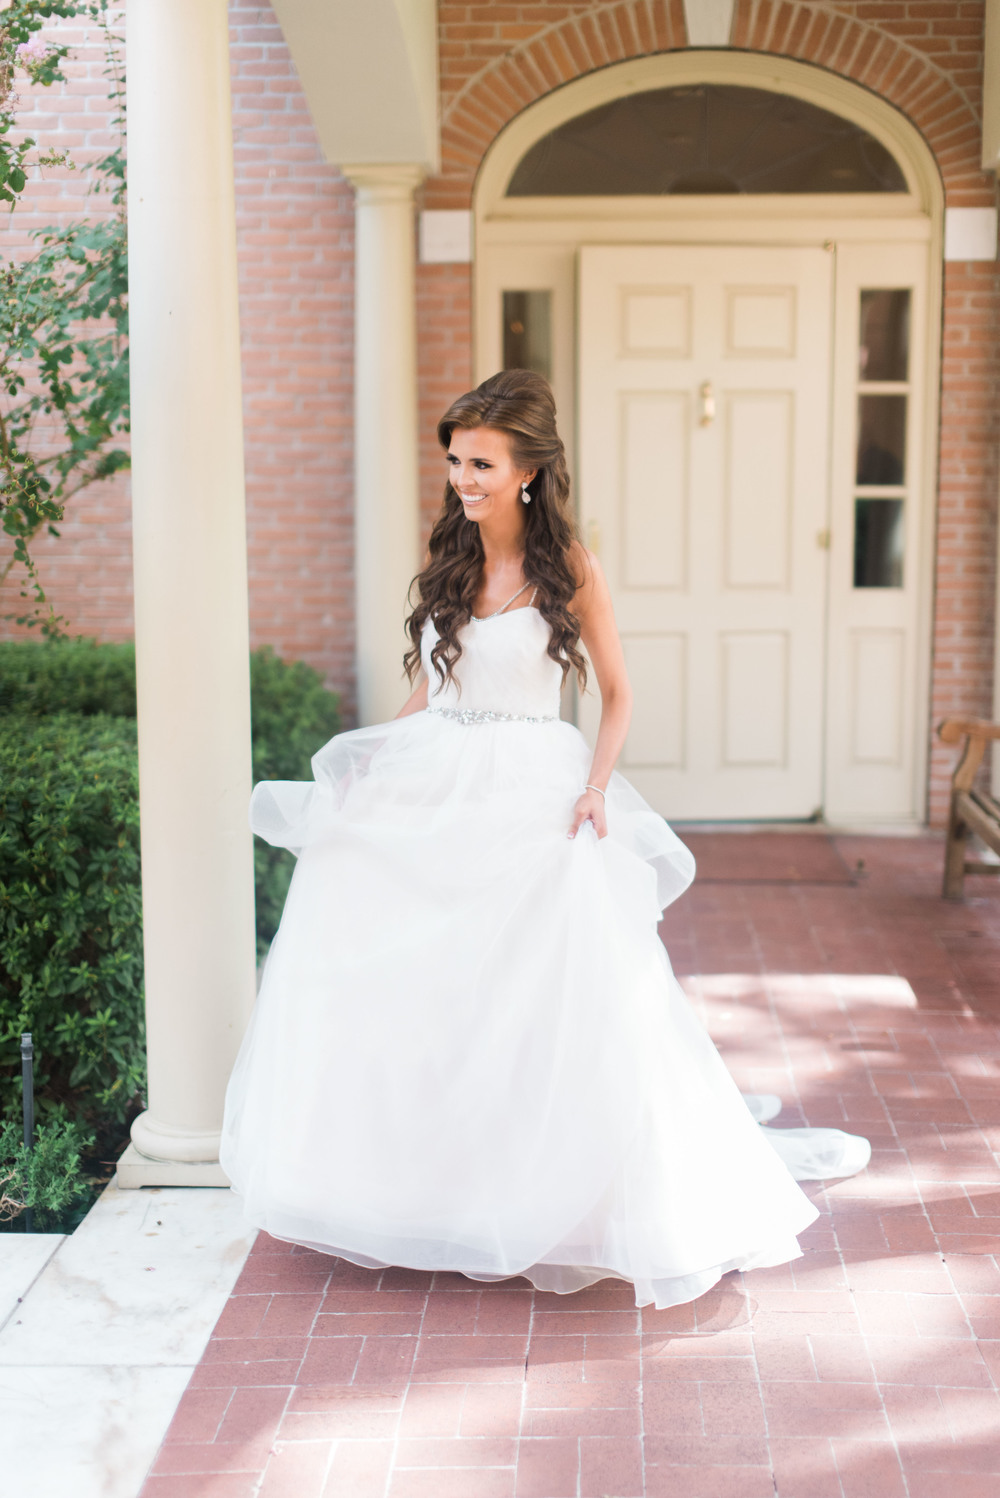 Dana-Fernandez-Photography-Weddings-in-Houston-Magazine-feature-Houston-wedding-photographer-film-22.jpg